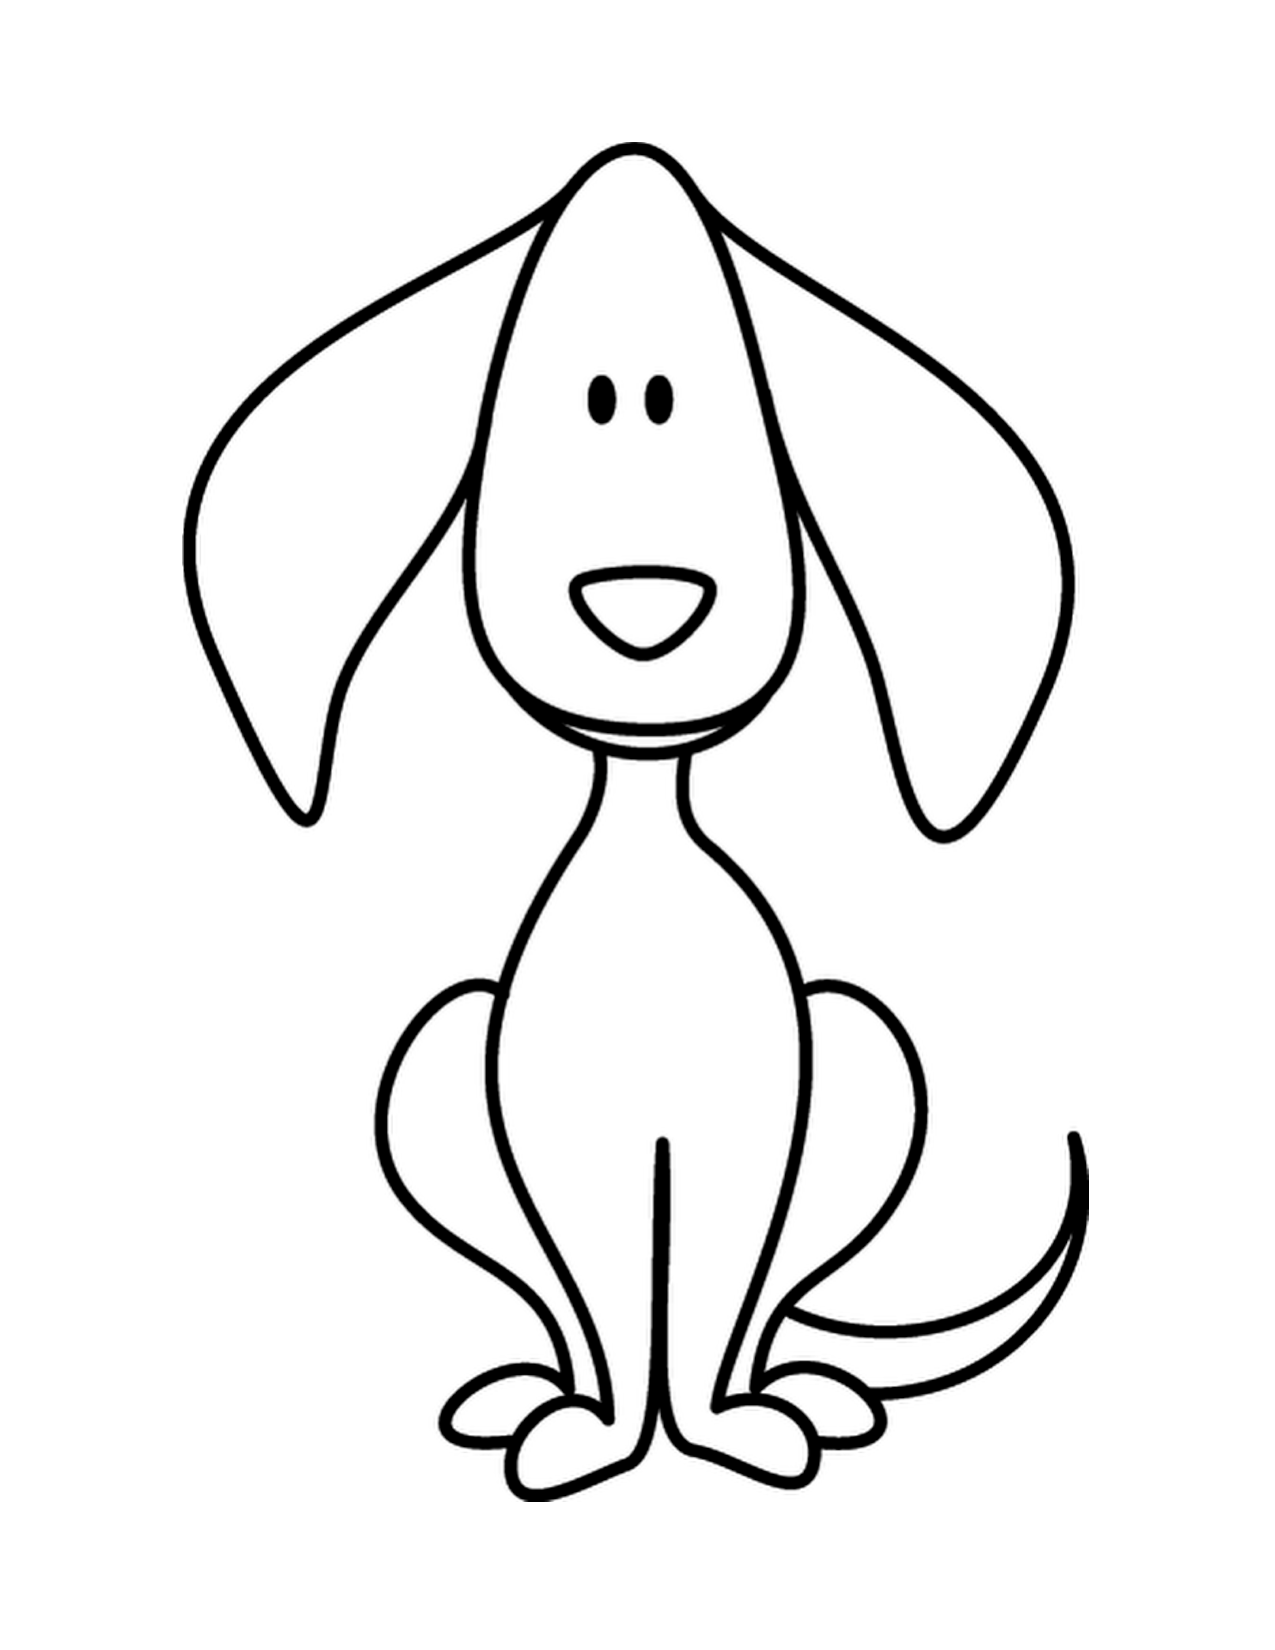 Puppy Dog Doodle Coloring Page | Coloring- - Clipart Best